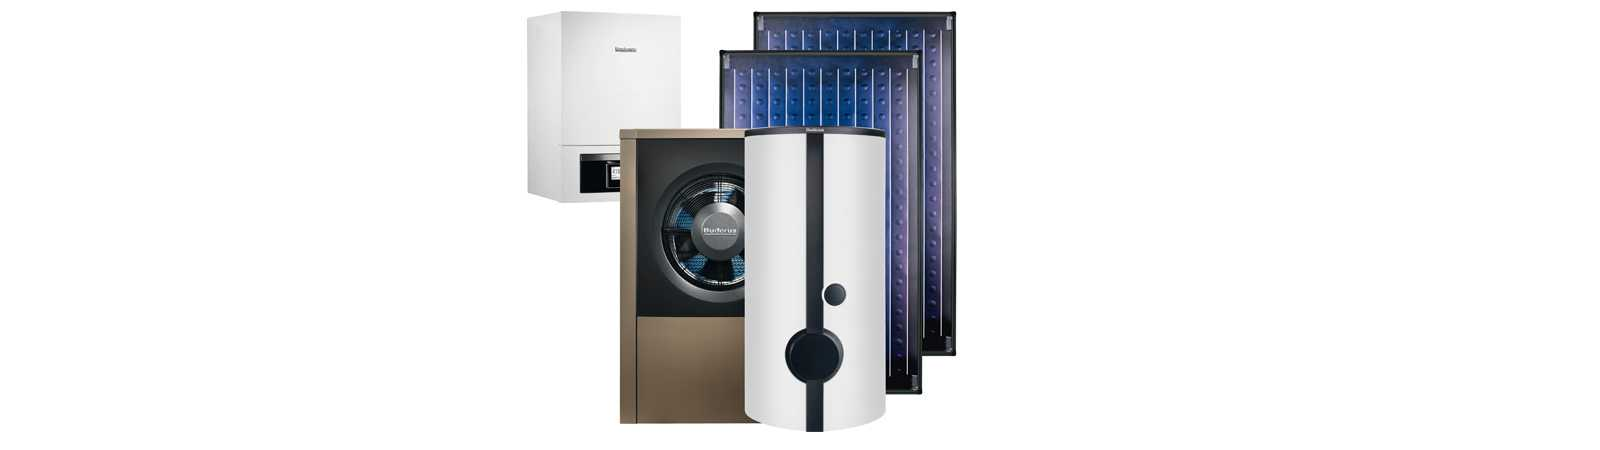 solar w rmepumpe die kombination mit solarthermie. Black Bedroom Furniture Sets. Home Design Ideas